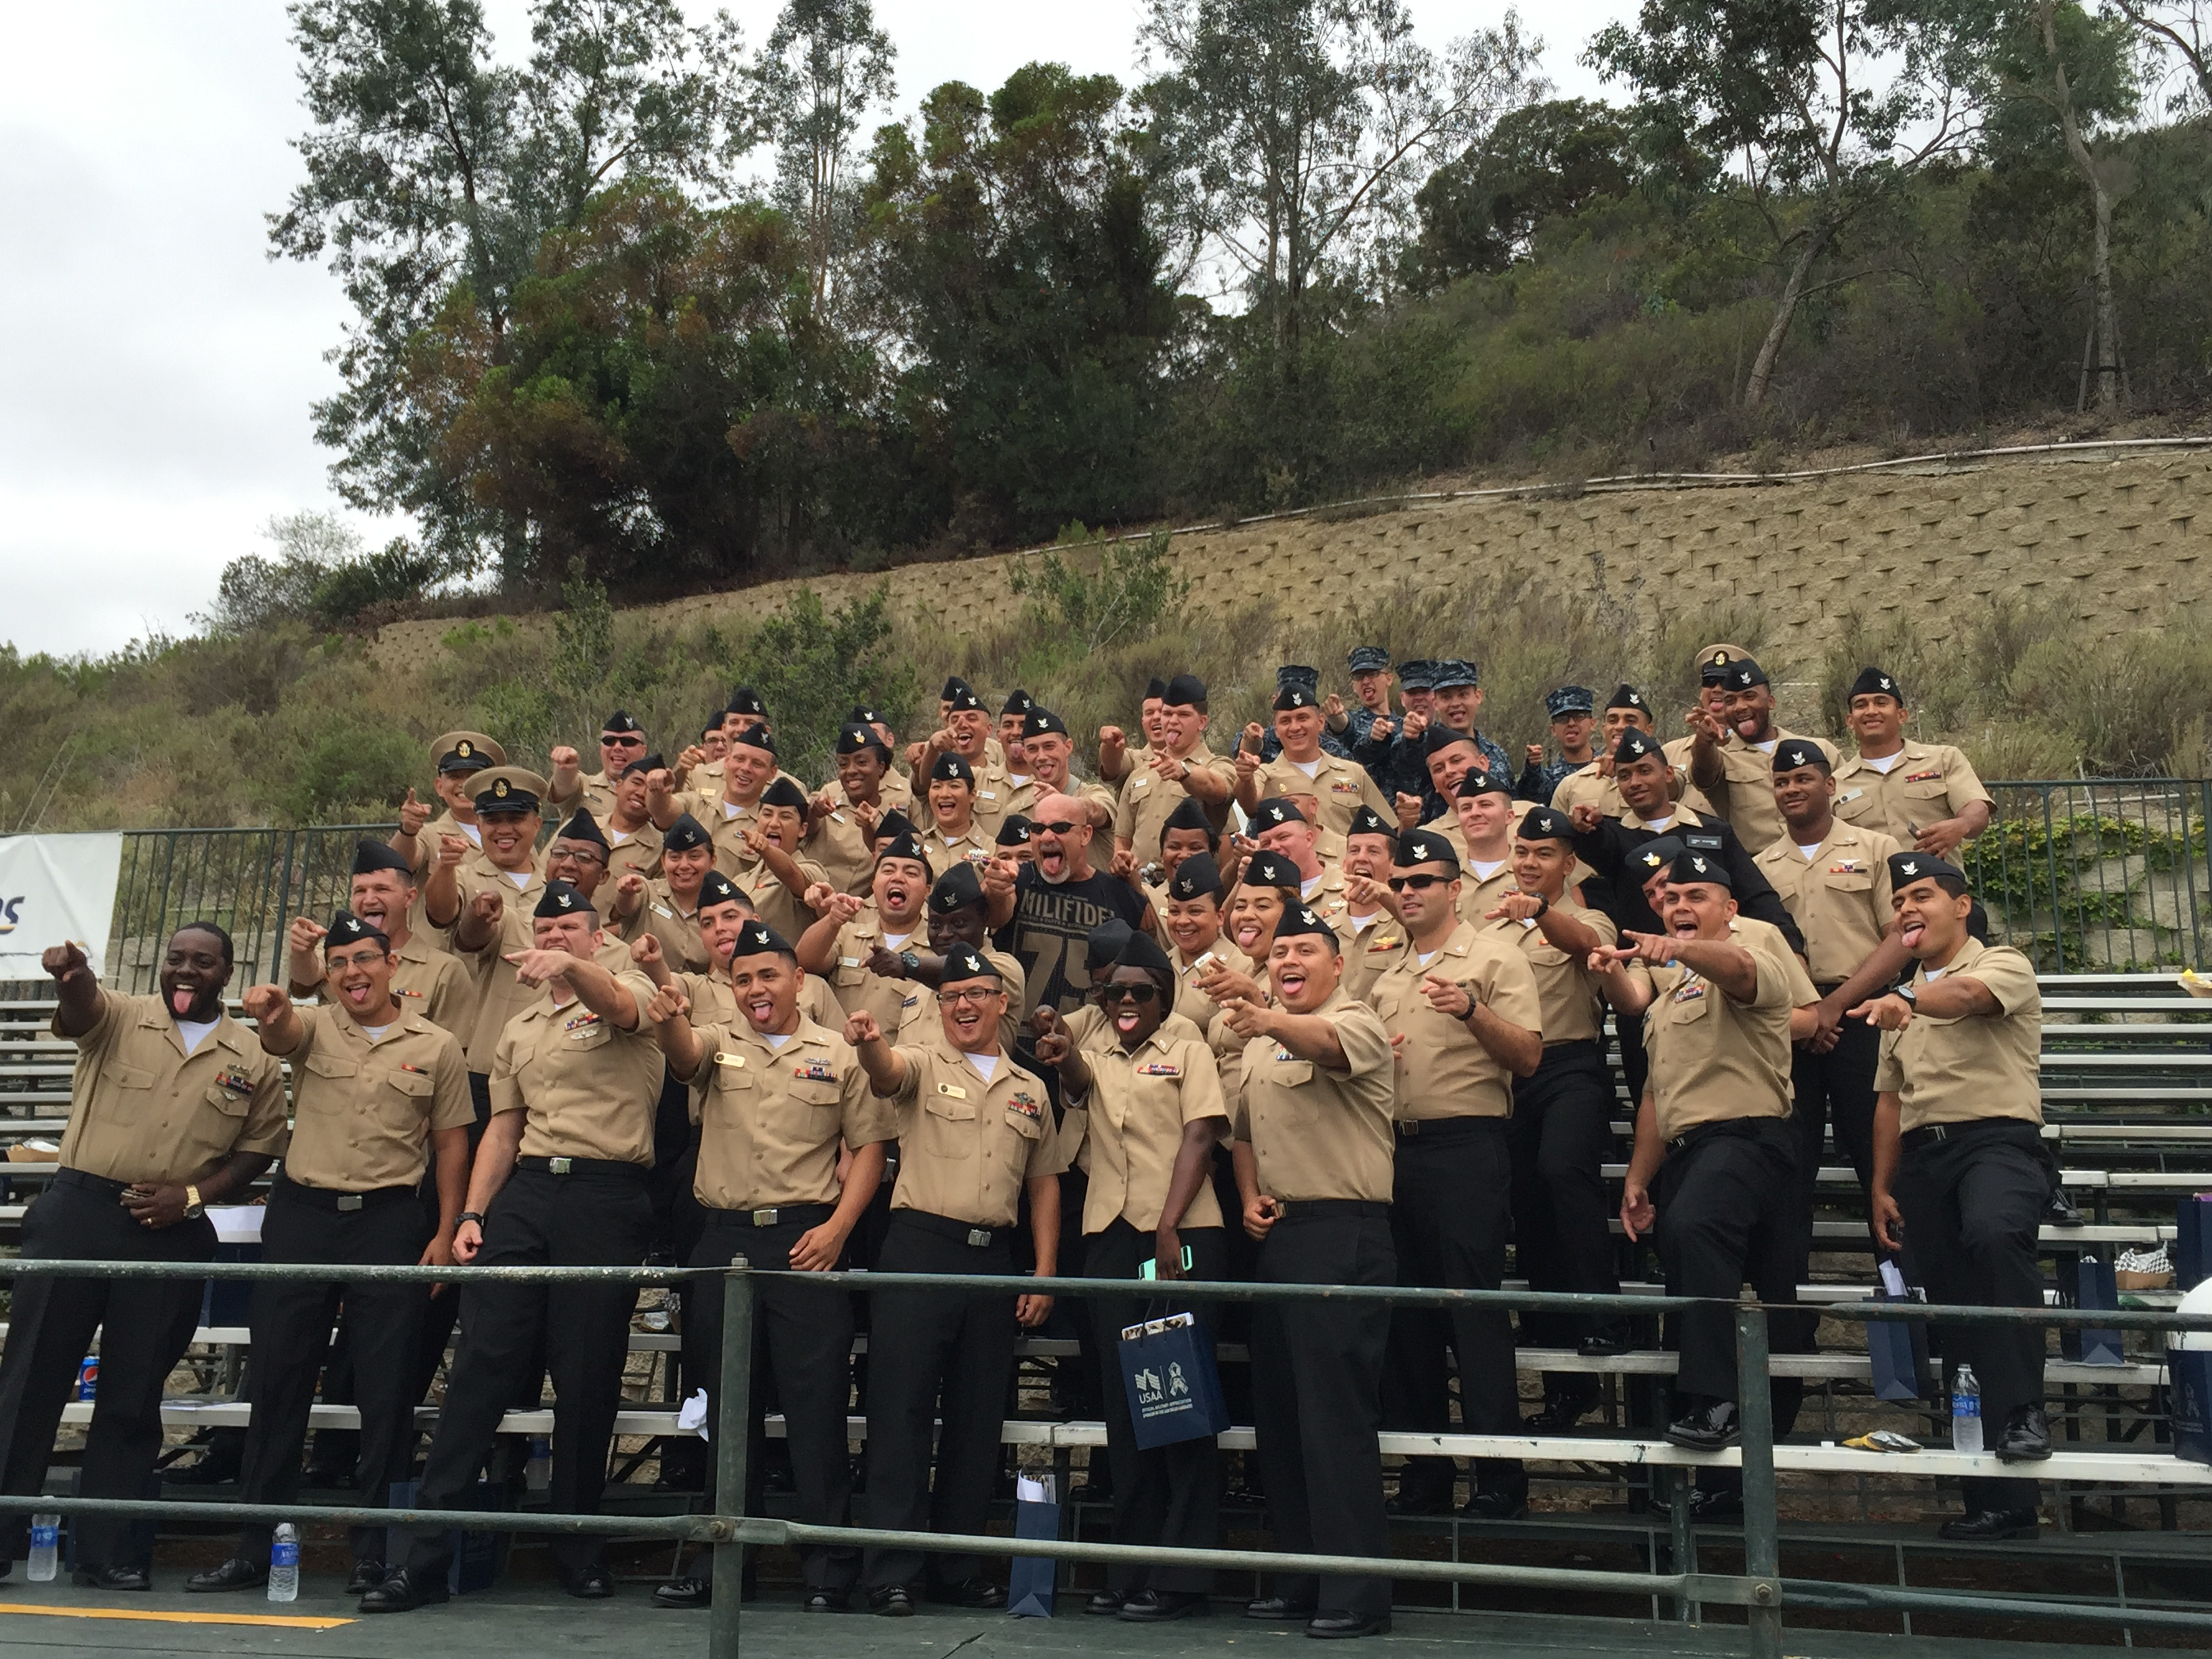 Chargers and Marines